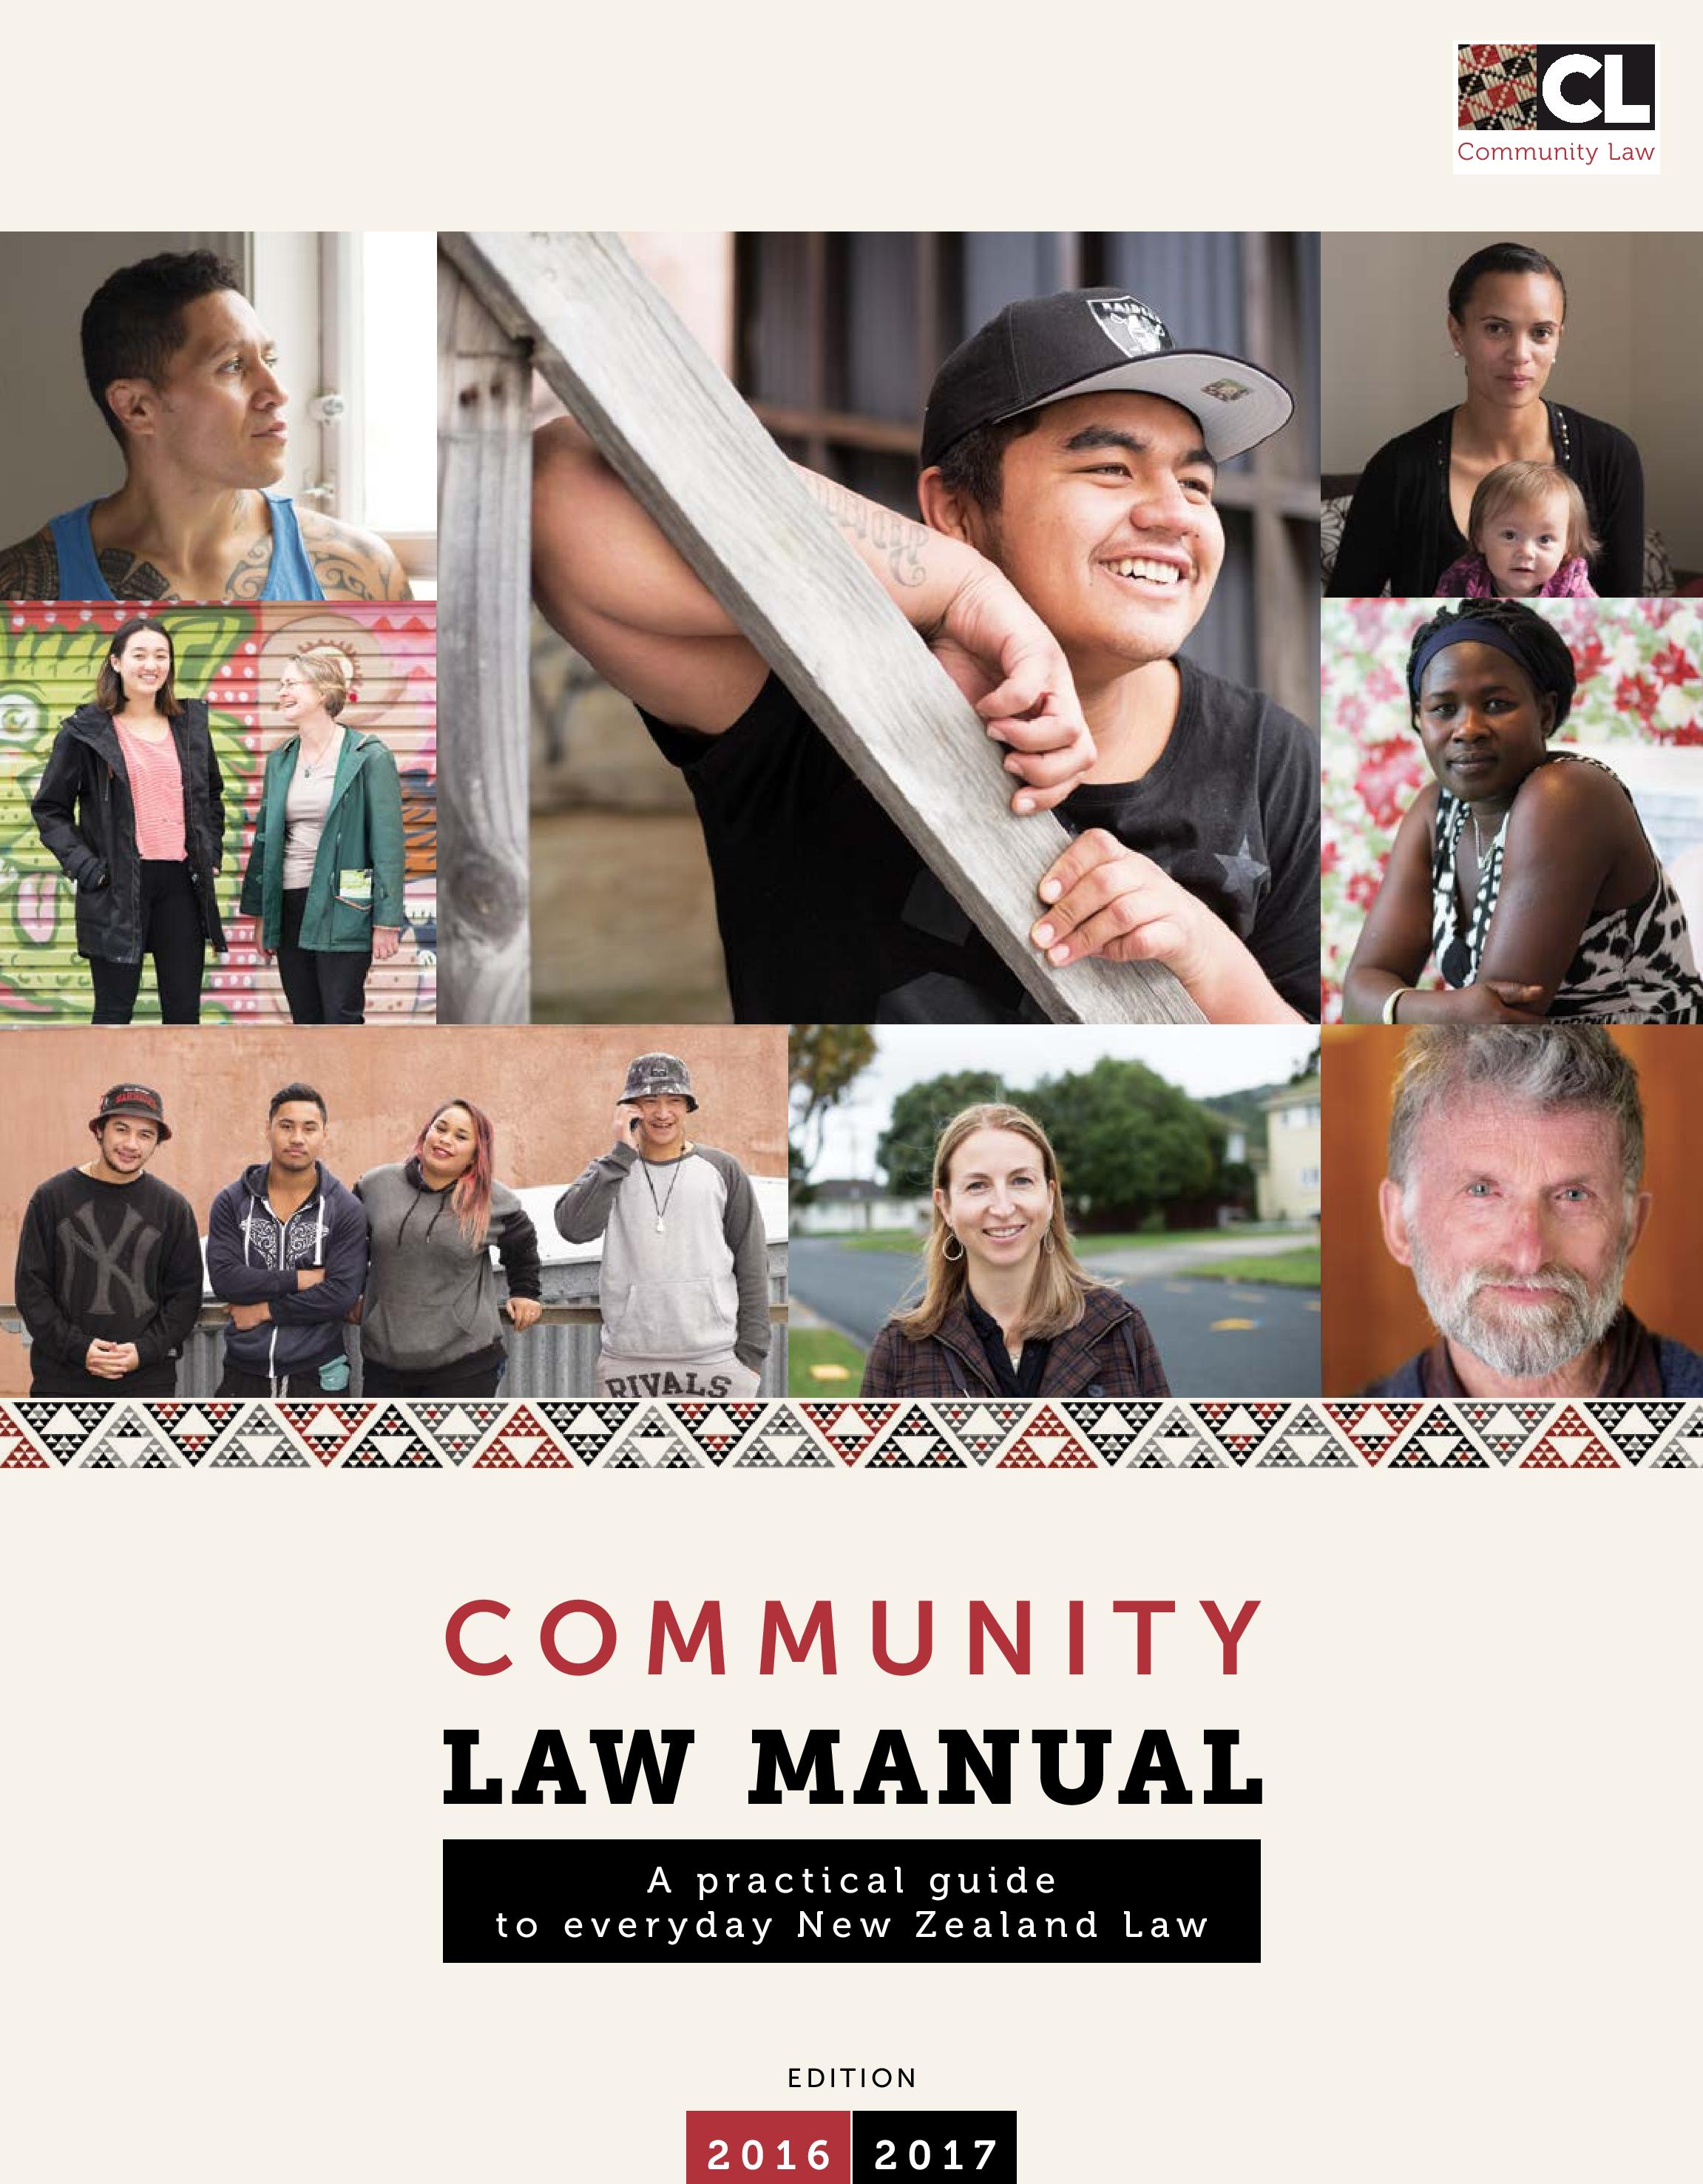 Community Law Manual cover. Images of people from the community. Text reads: Community Law Manual: A practical guide to everyday New Zealand law. Edition 2016-2017